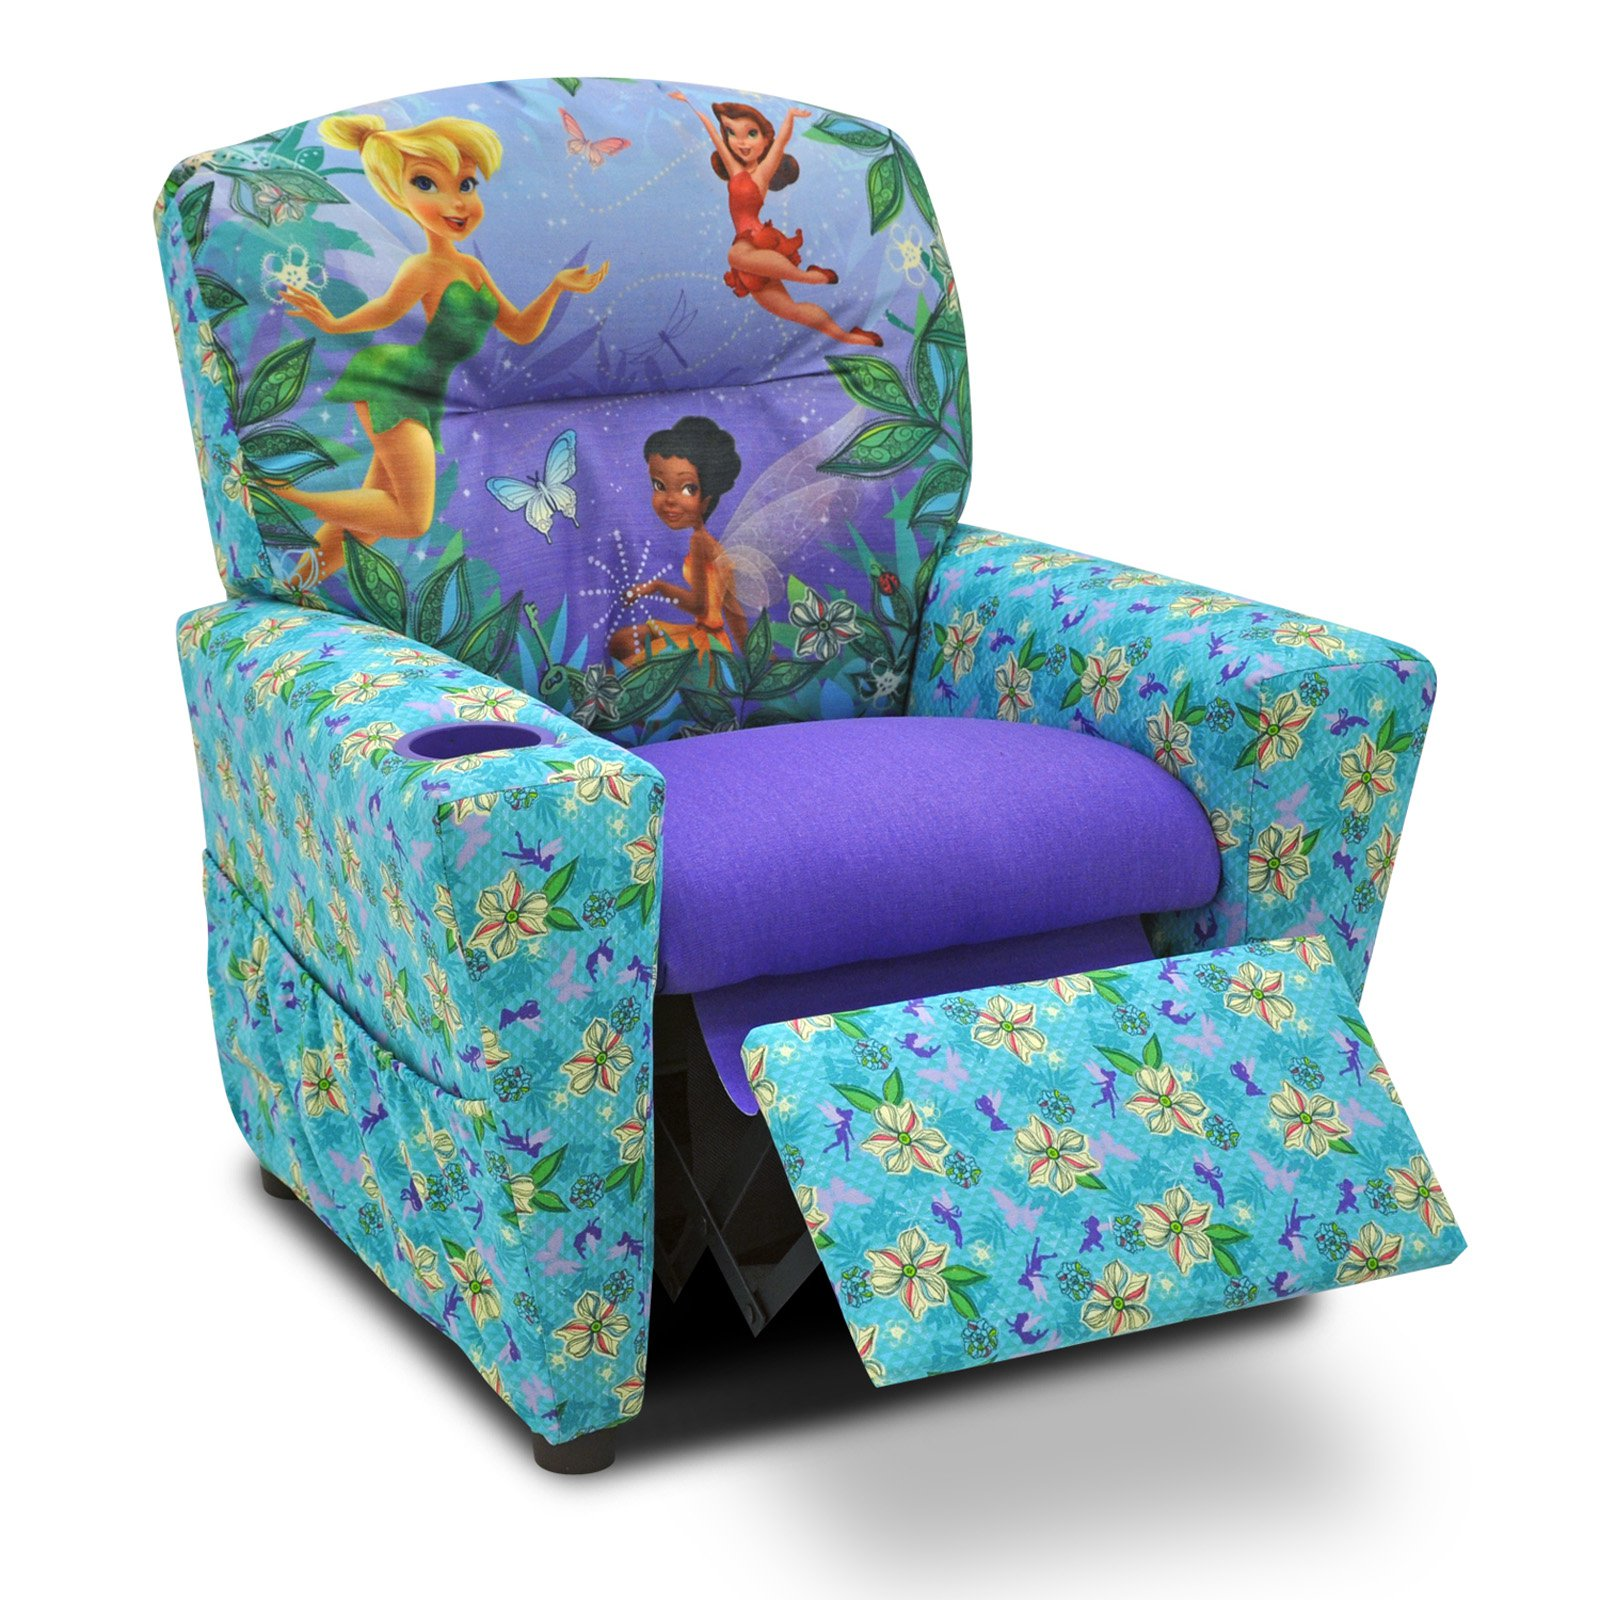 Disney Fairies Floral Blue & Purple Childrens Recliner